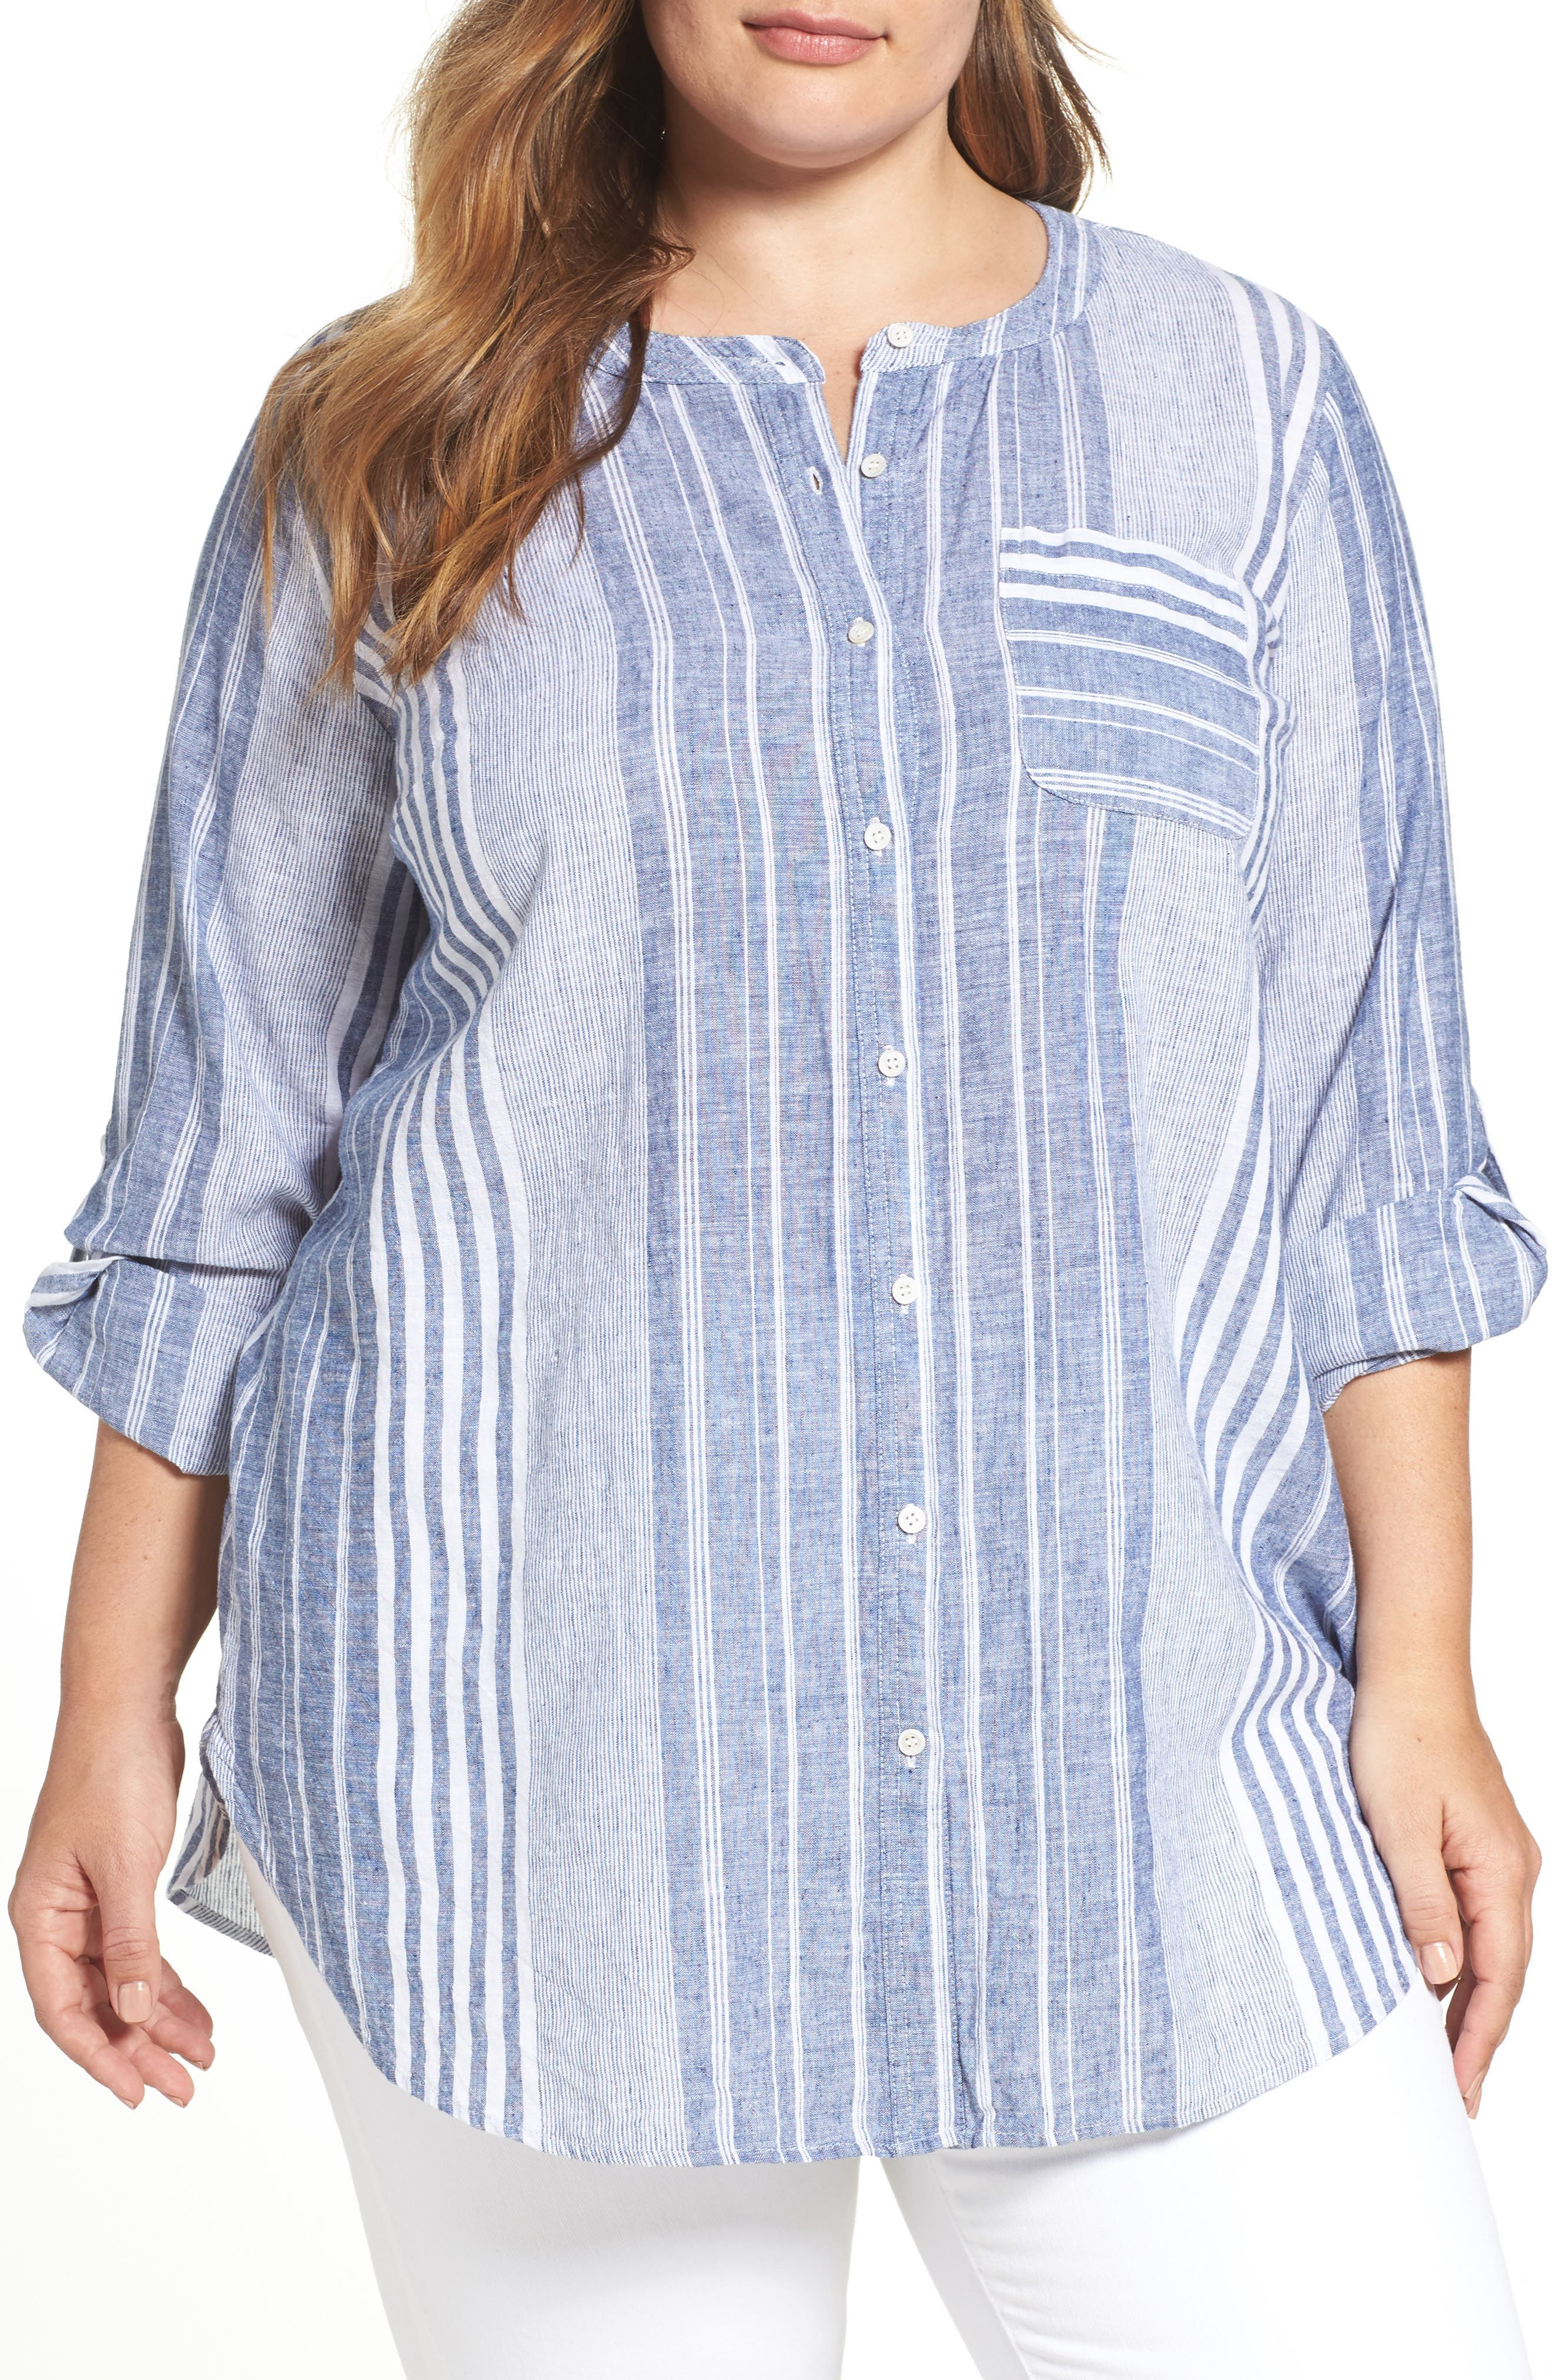 Alternate Image 1 Selected - Two by Vince Camuto Variegated Stripe Linen Blend Tunic (Plus Size)